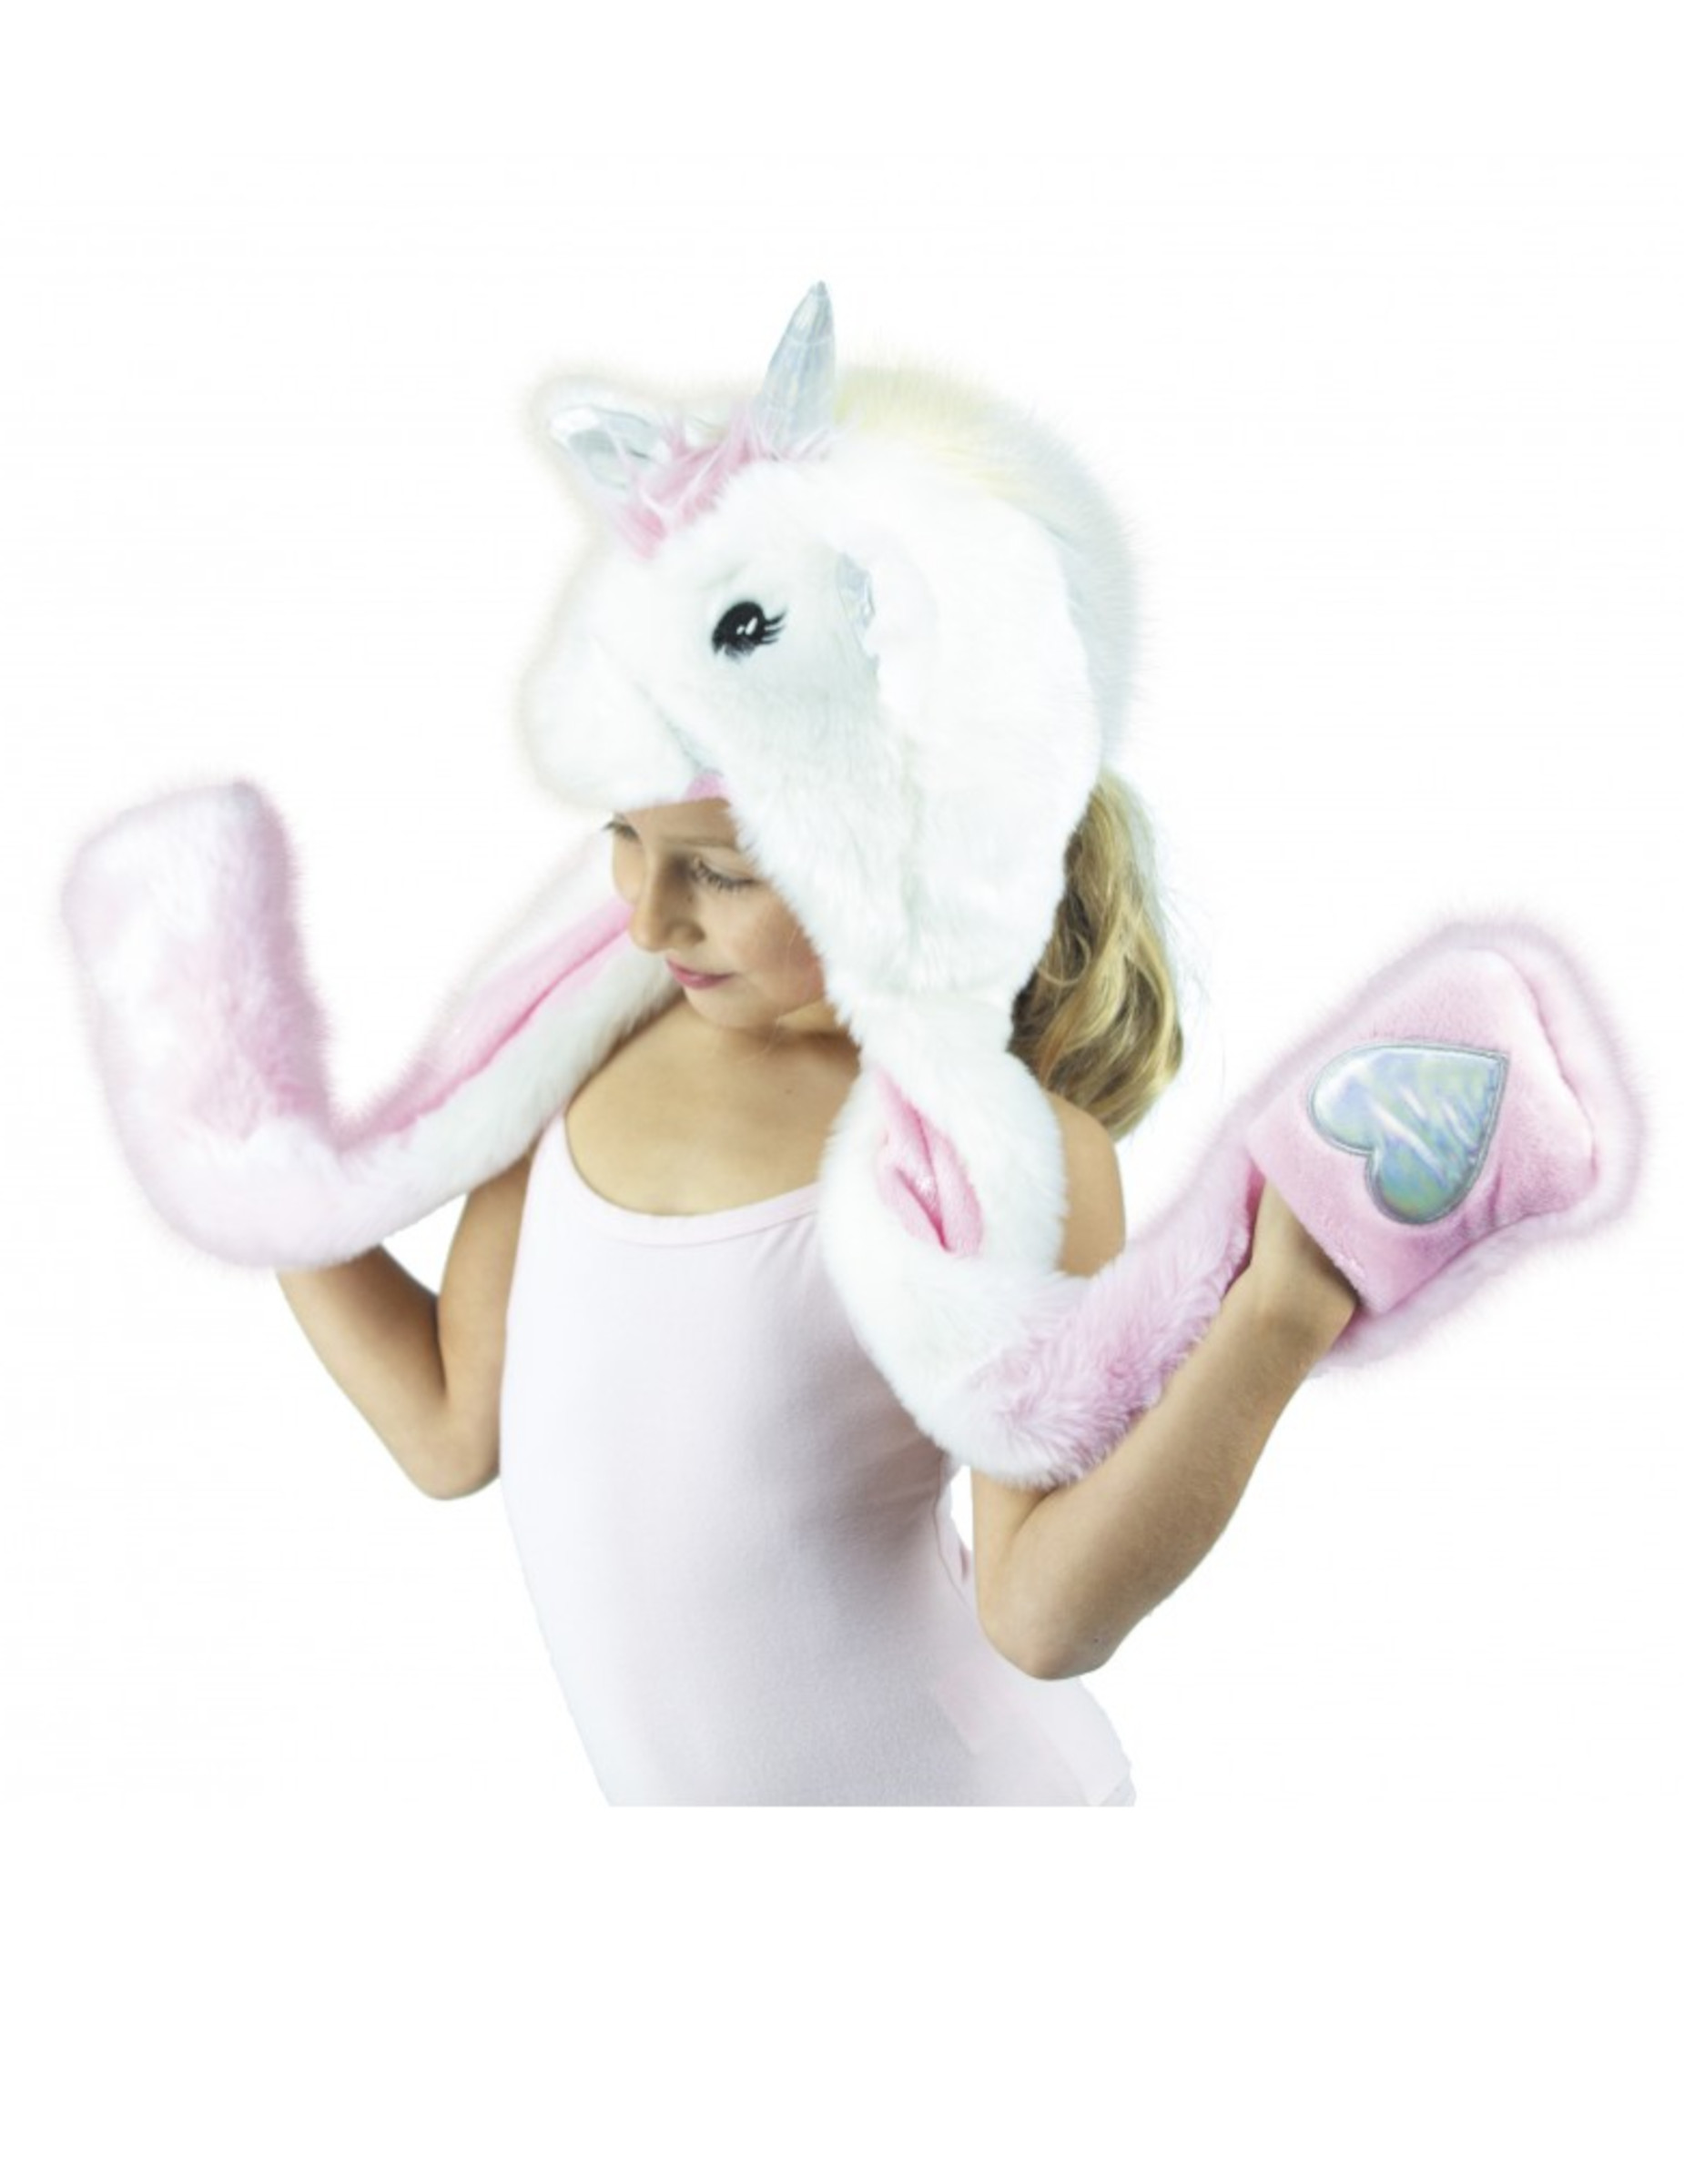 Animale berretto cappello di peluche unicorno